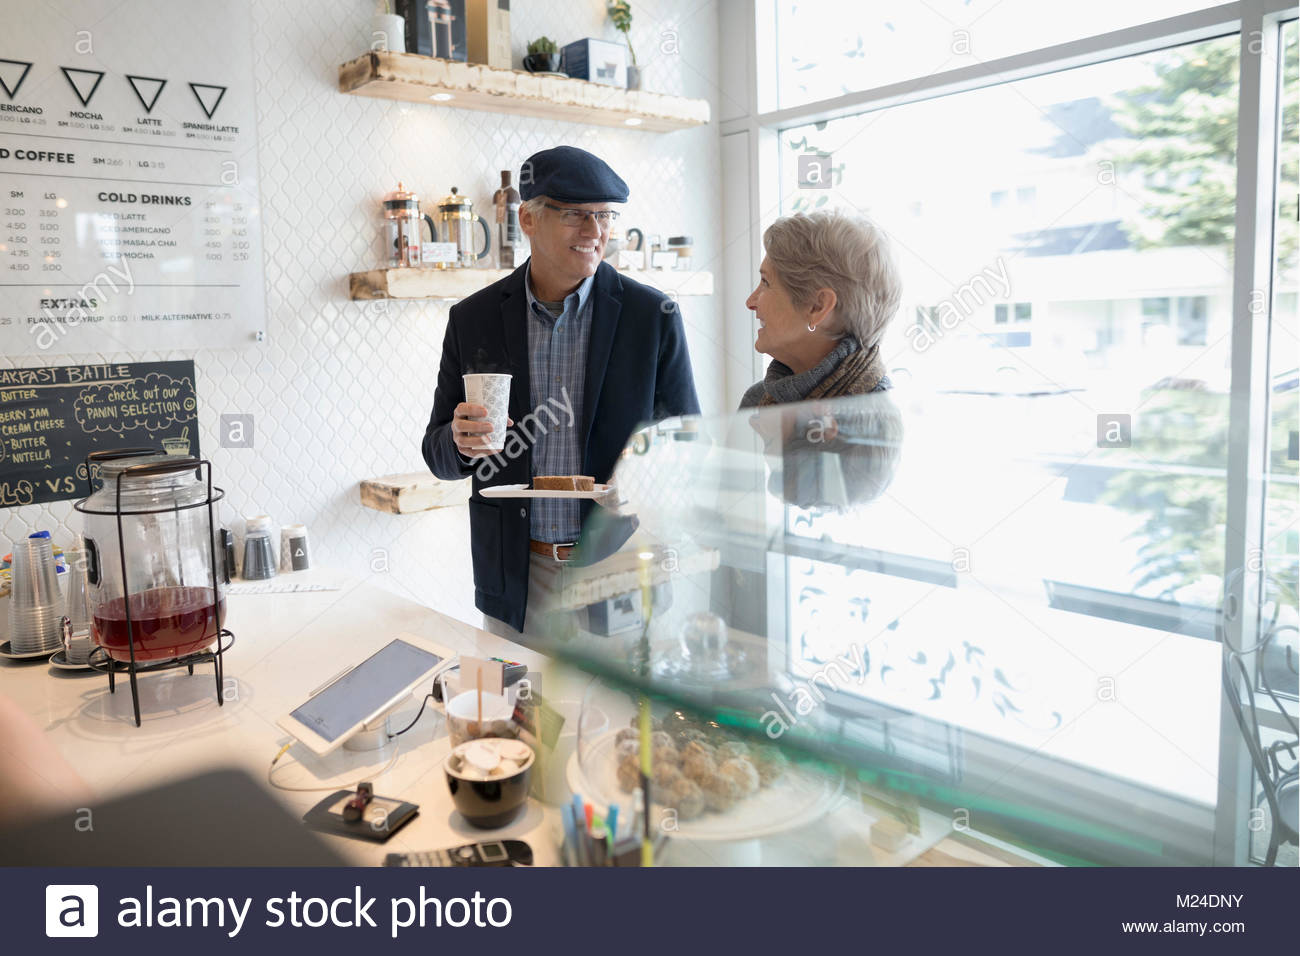 Senior couple buying coffee and pastries at cafe counter - Stock Image